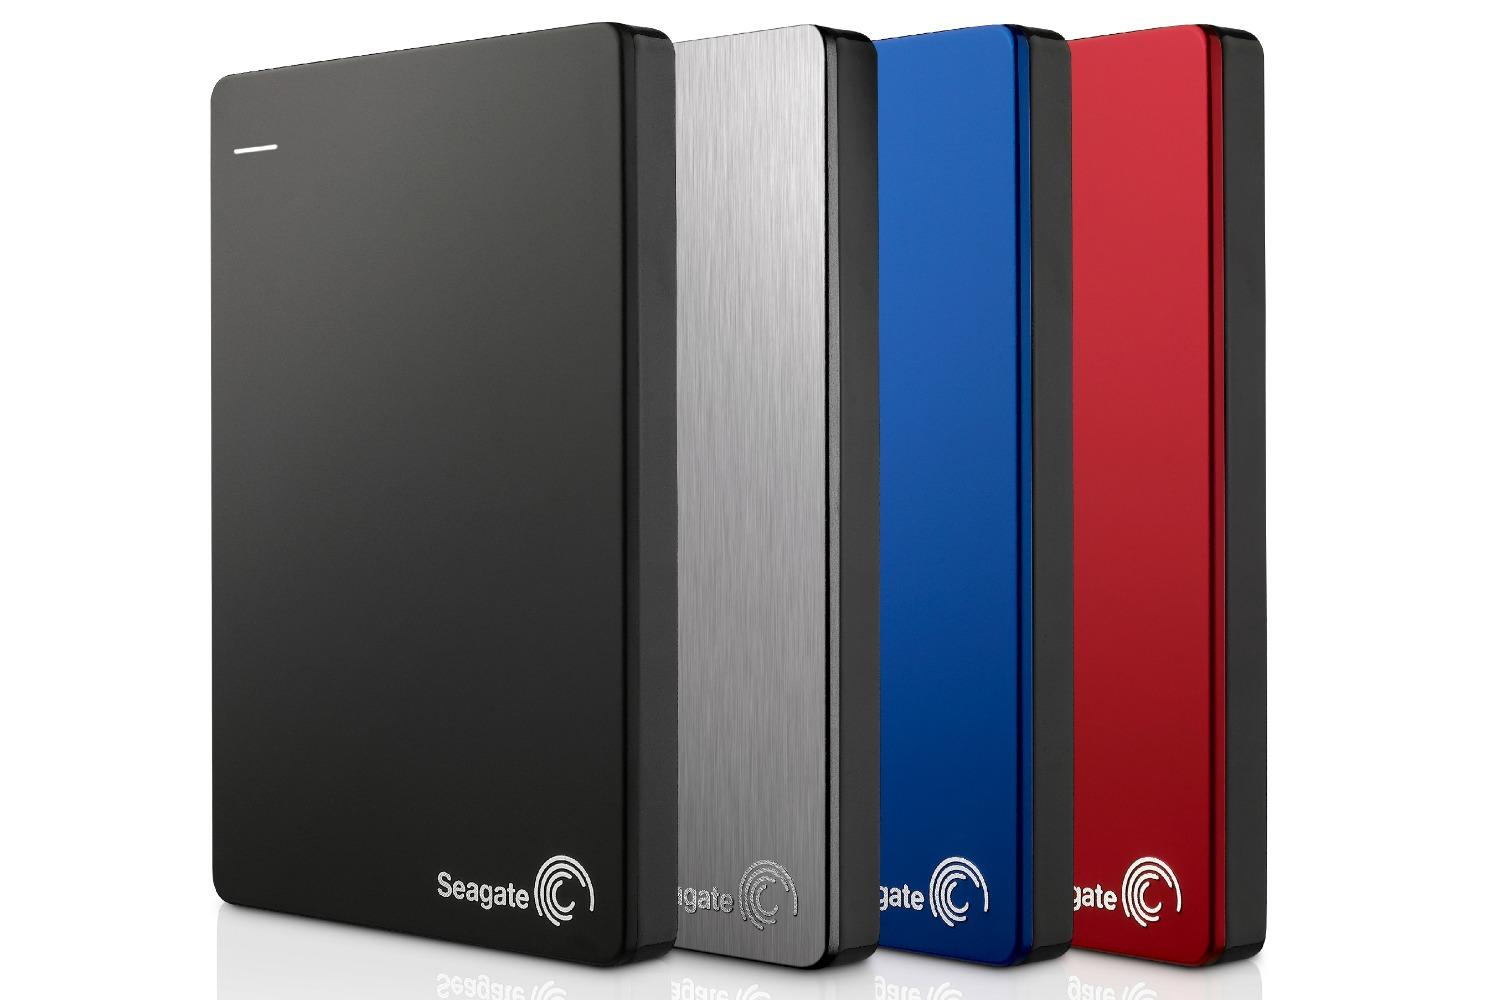 هارد اكسترنال - External H.D سيگيت-Seagate Backup Plus Slim-2TB-USB 3.0-USB 2.0